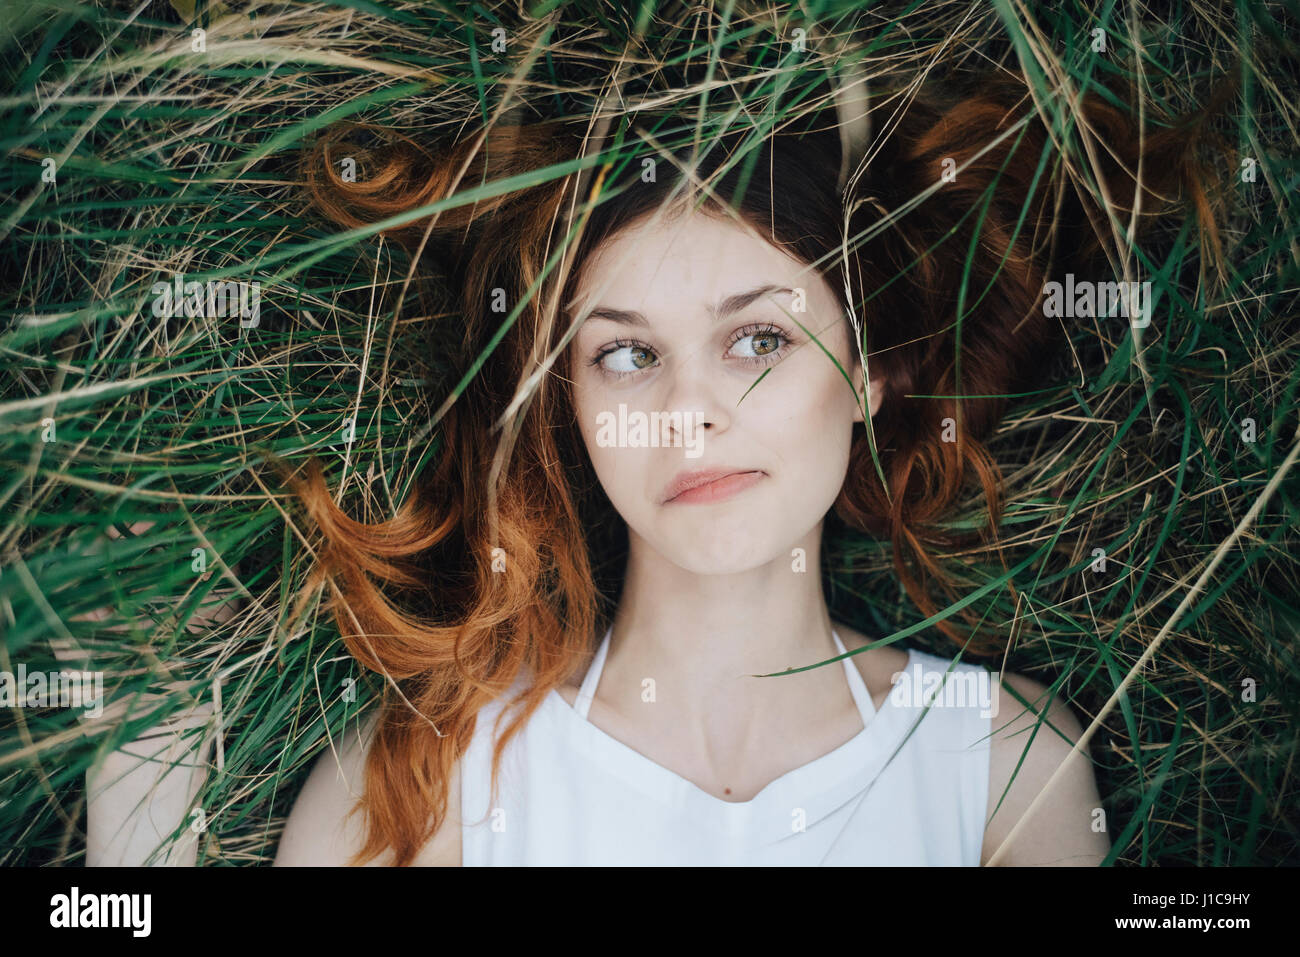 Caucasian woman laying in grass blowing hair off face - Stock Image